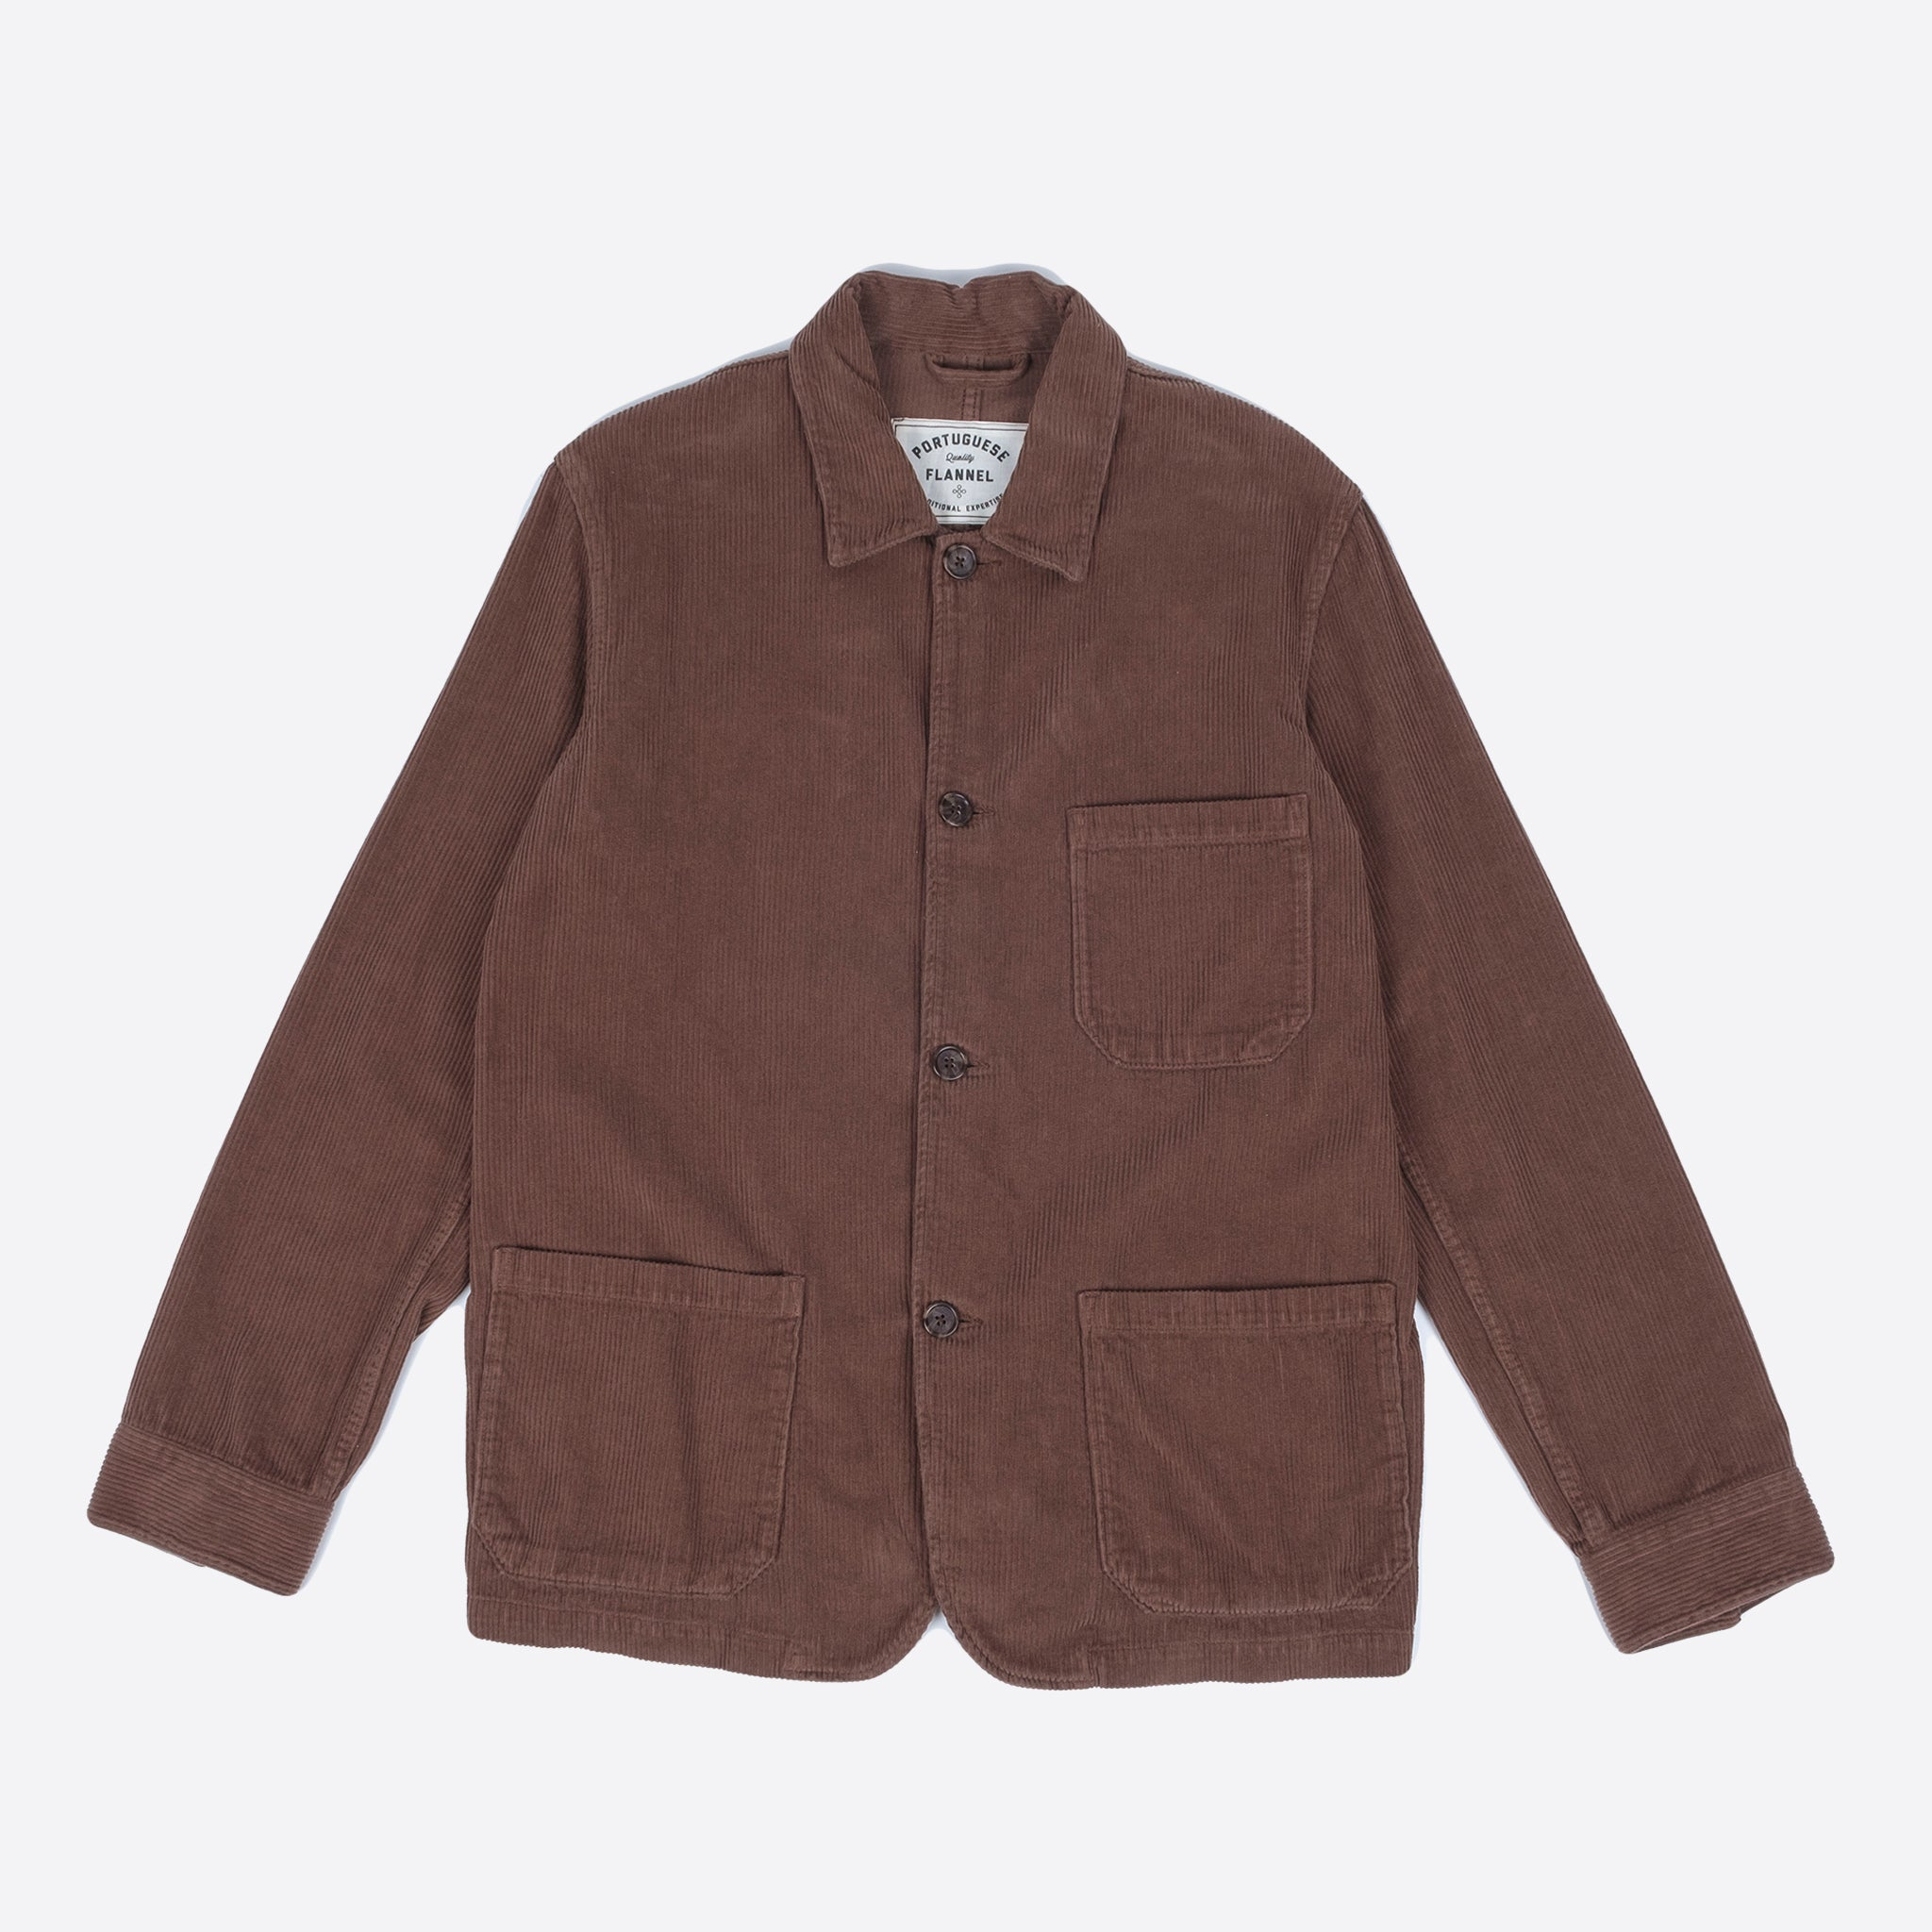 Portuguese Flannel Labura Overshirt in Brown Corduroy